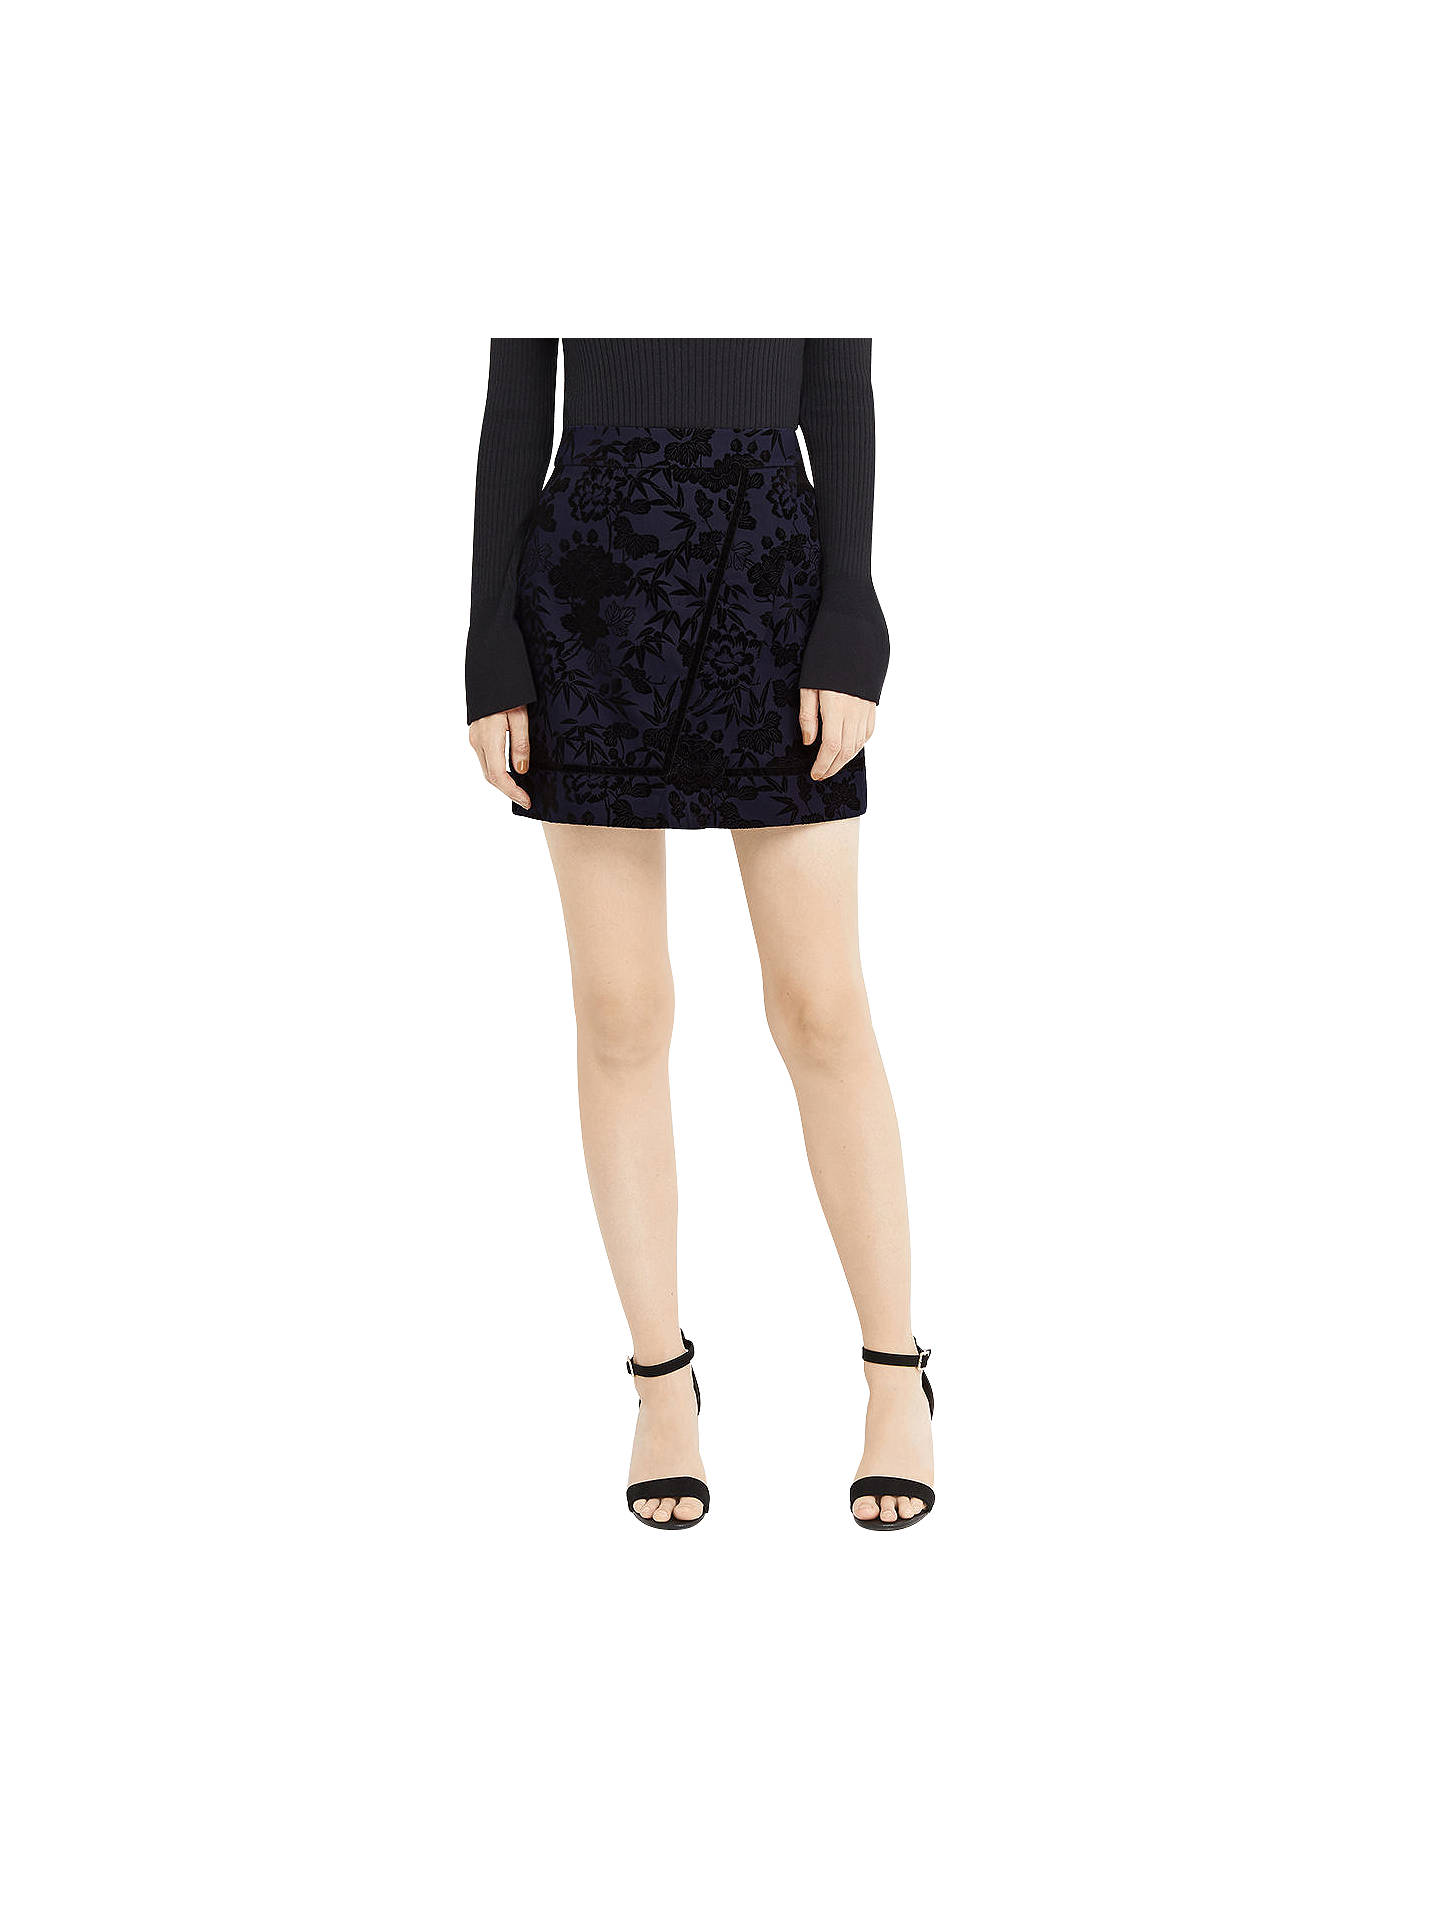 BuyOasis Flocked Mini Skirt, Navy, 6 Online at johnlewis.com